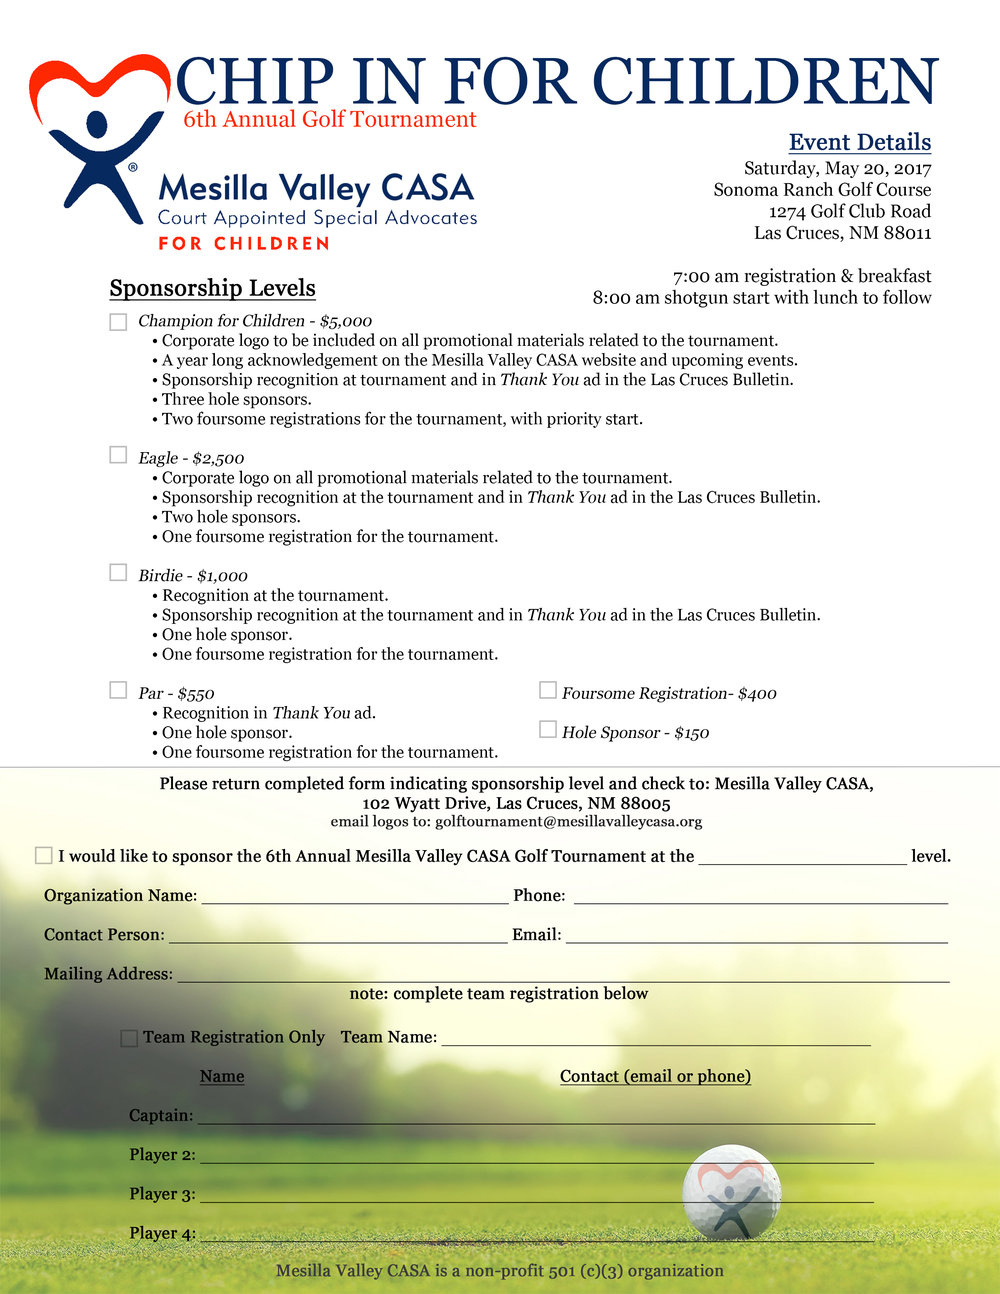 Print this regitration form and mail it in today!